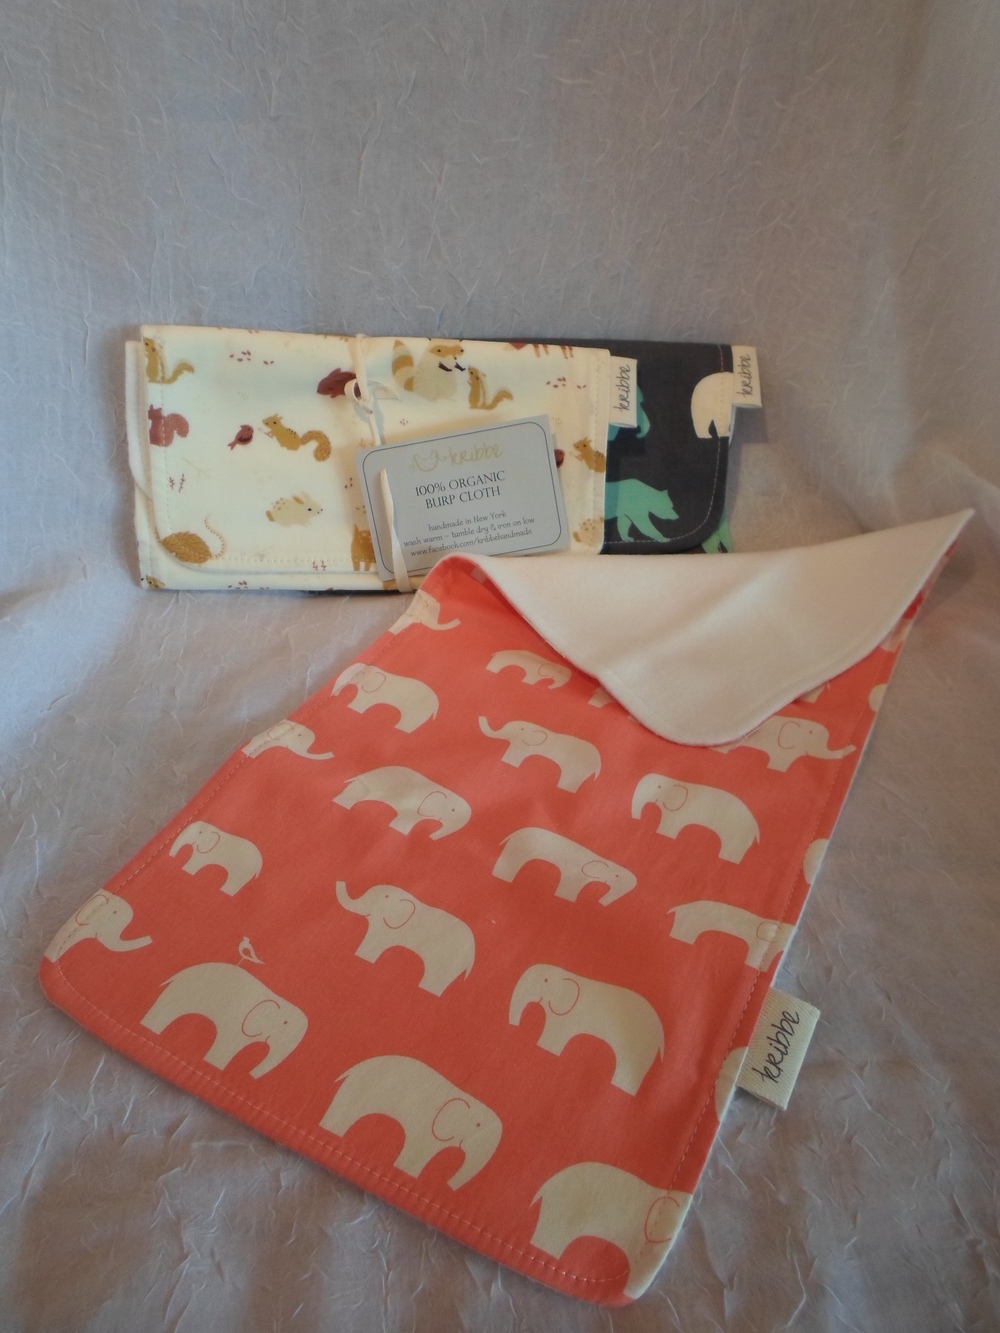 Kribbe Organic Cotton Burps (your choice fabric)  Locally Handmade   $14.00 ea    Wants 1+